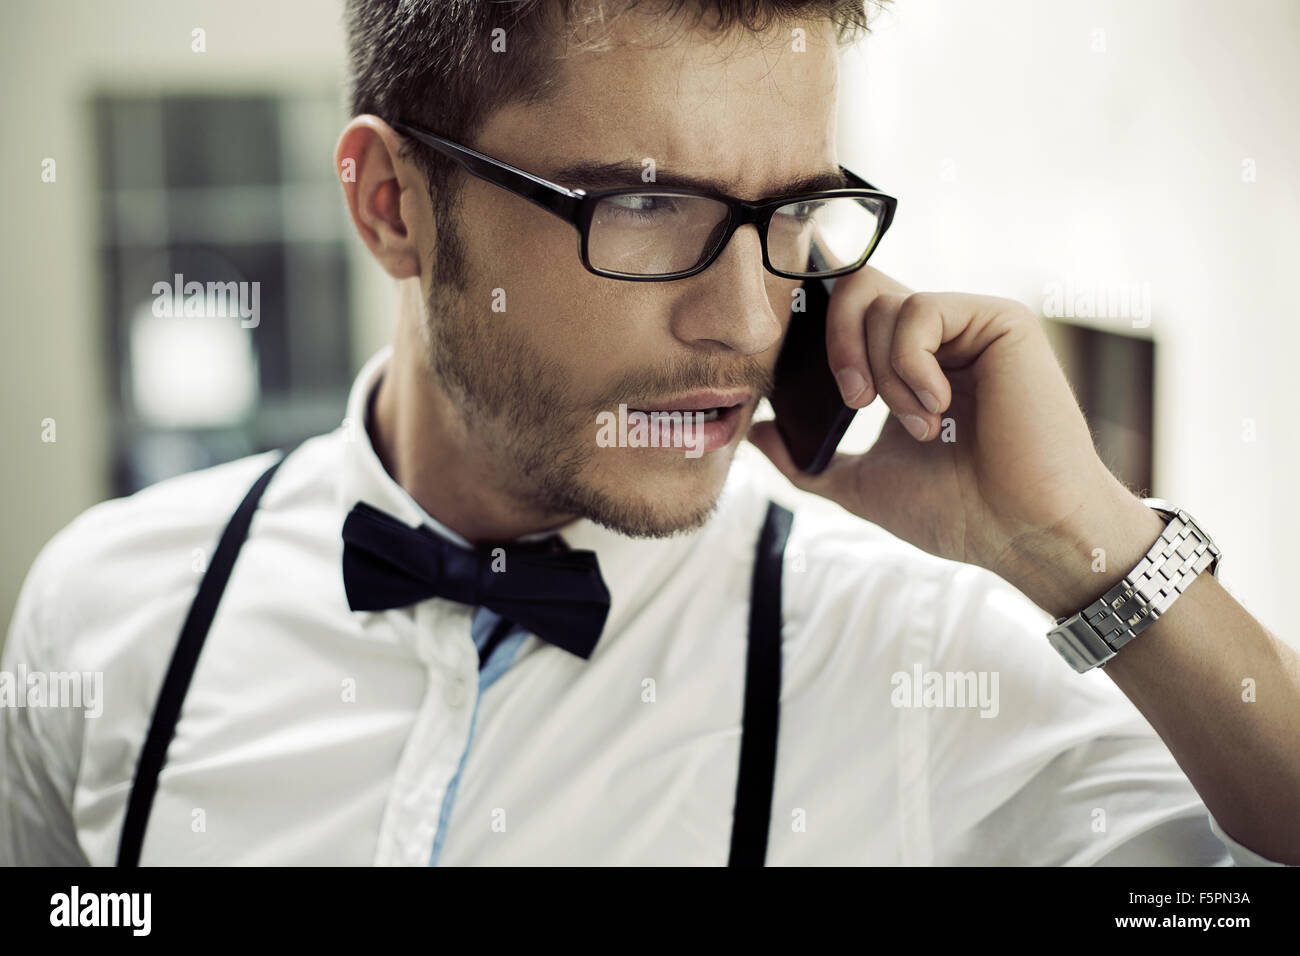 Closeup portrait of a phoning businessman - Stock Image